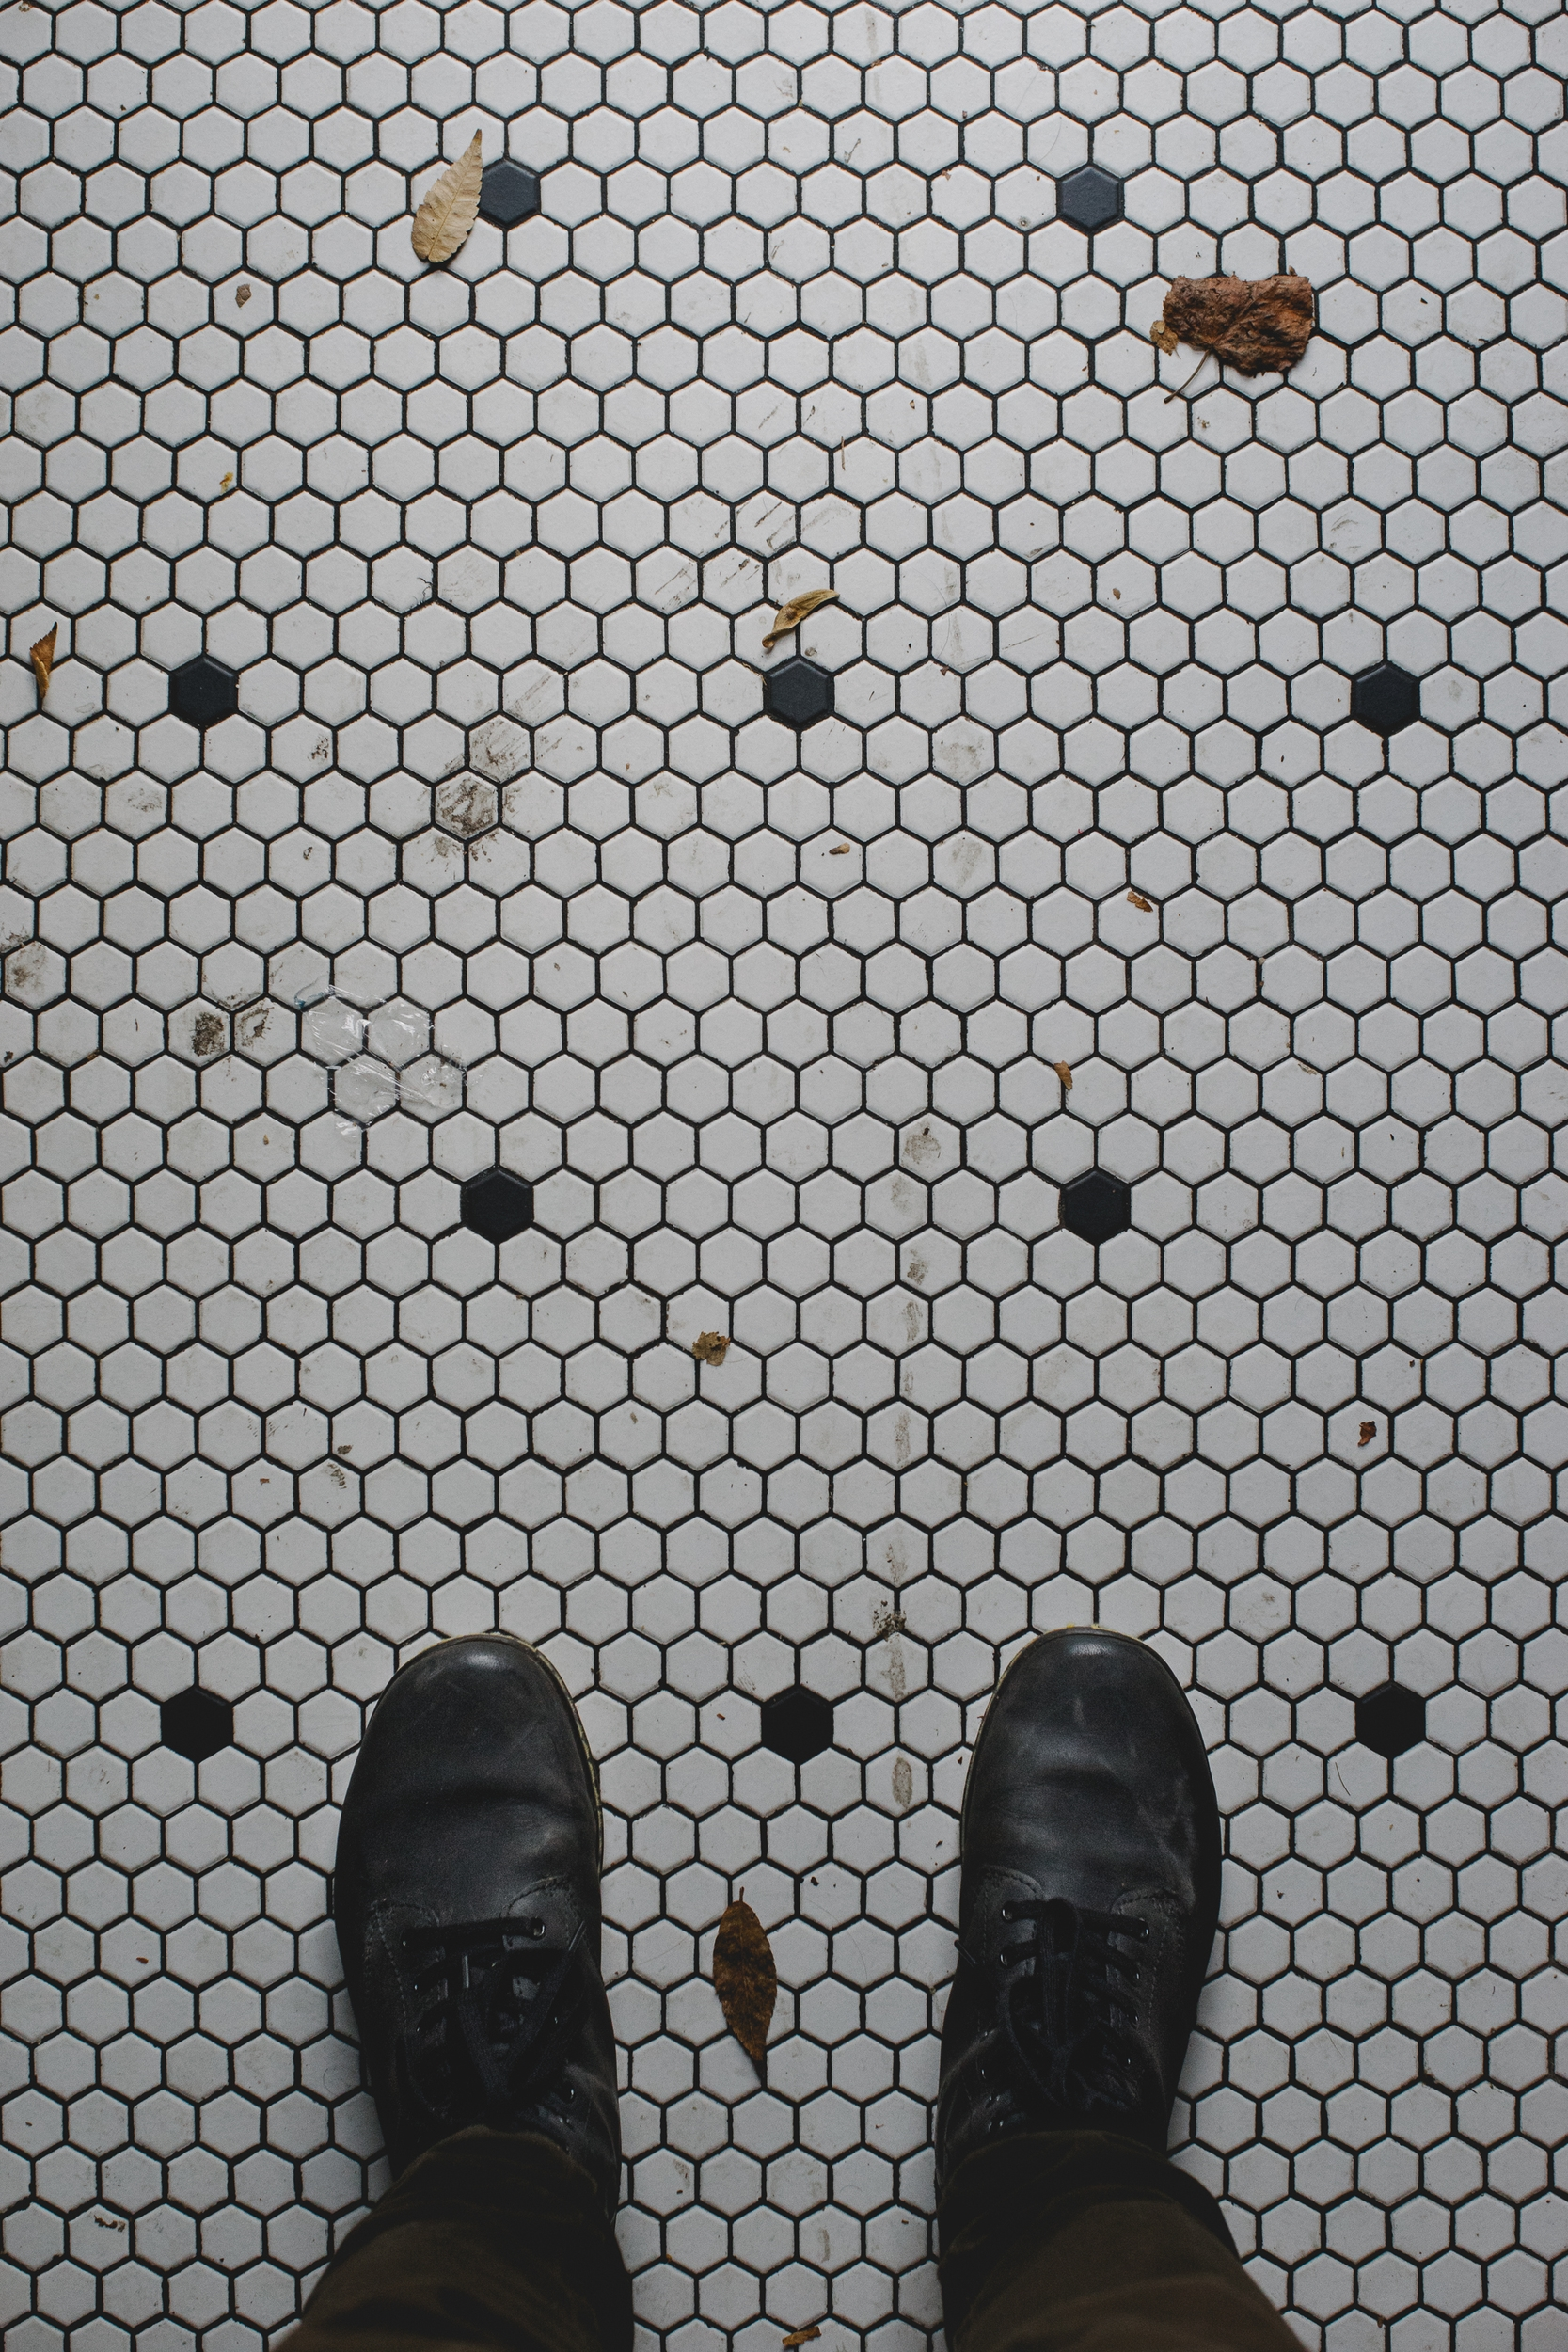 One of my favorite parts of this places is the hex floor; it's so amazing! #floorgoals